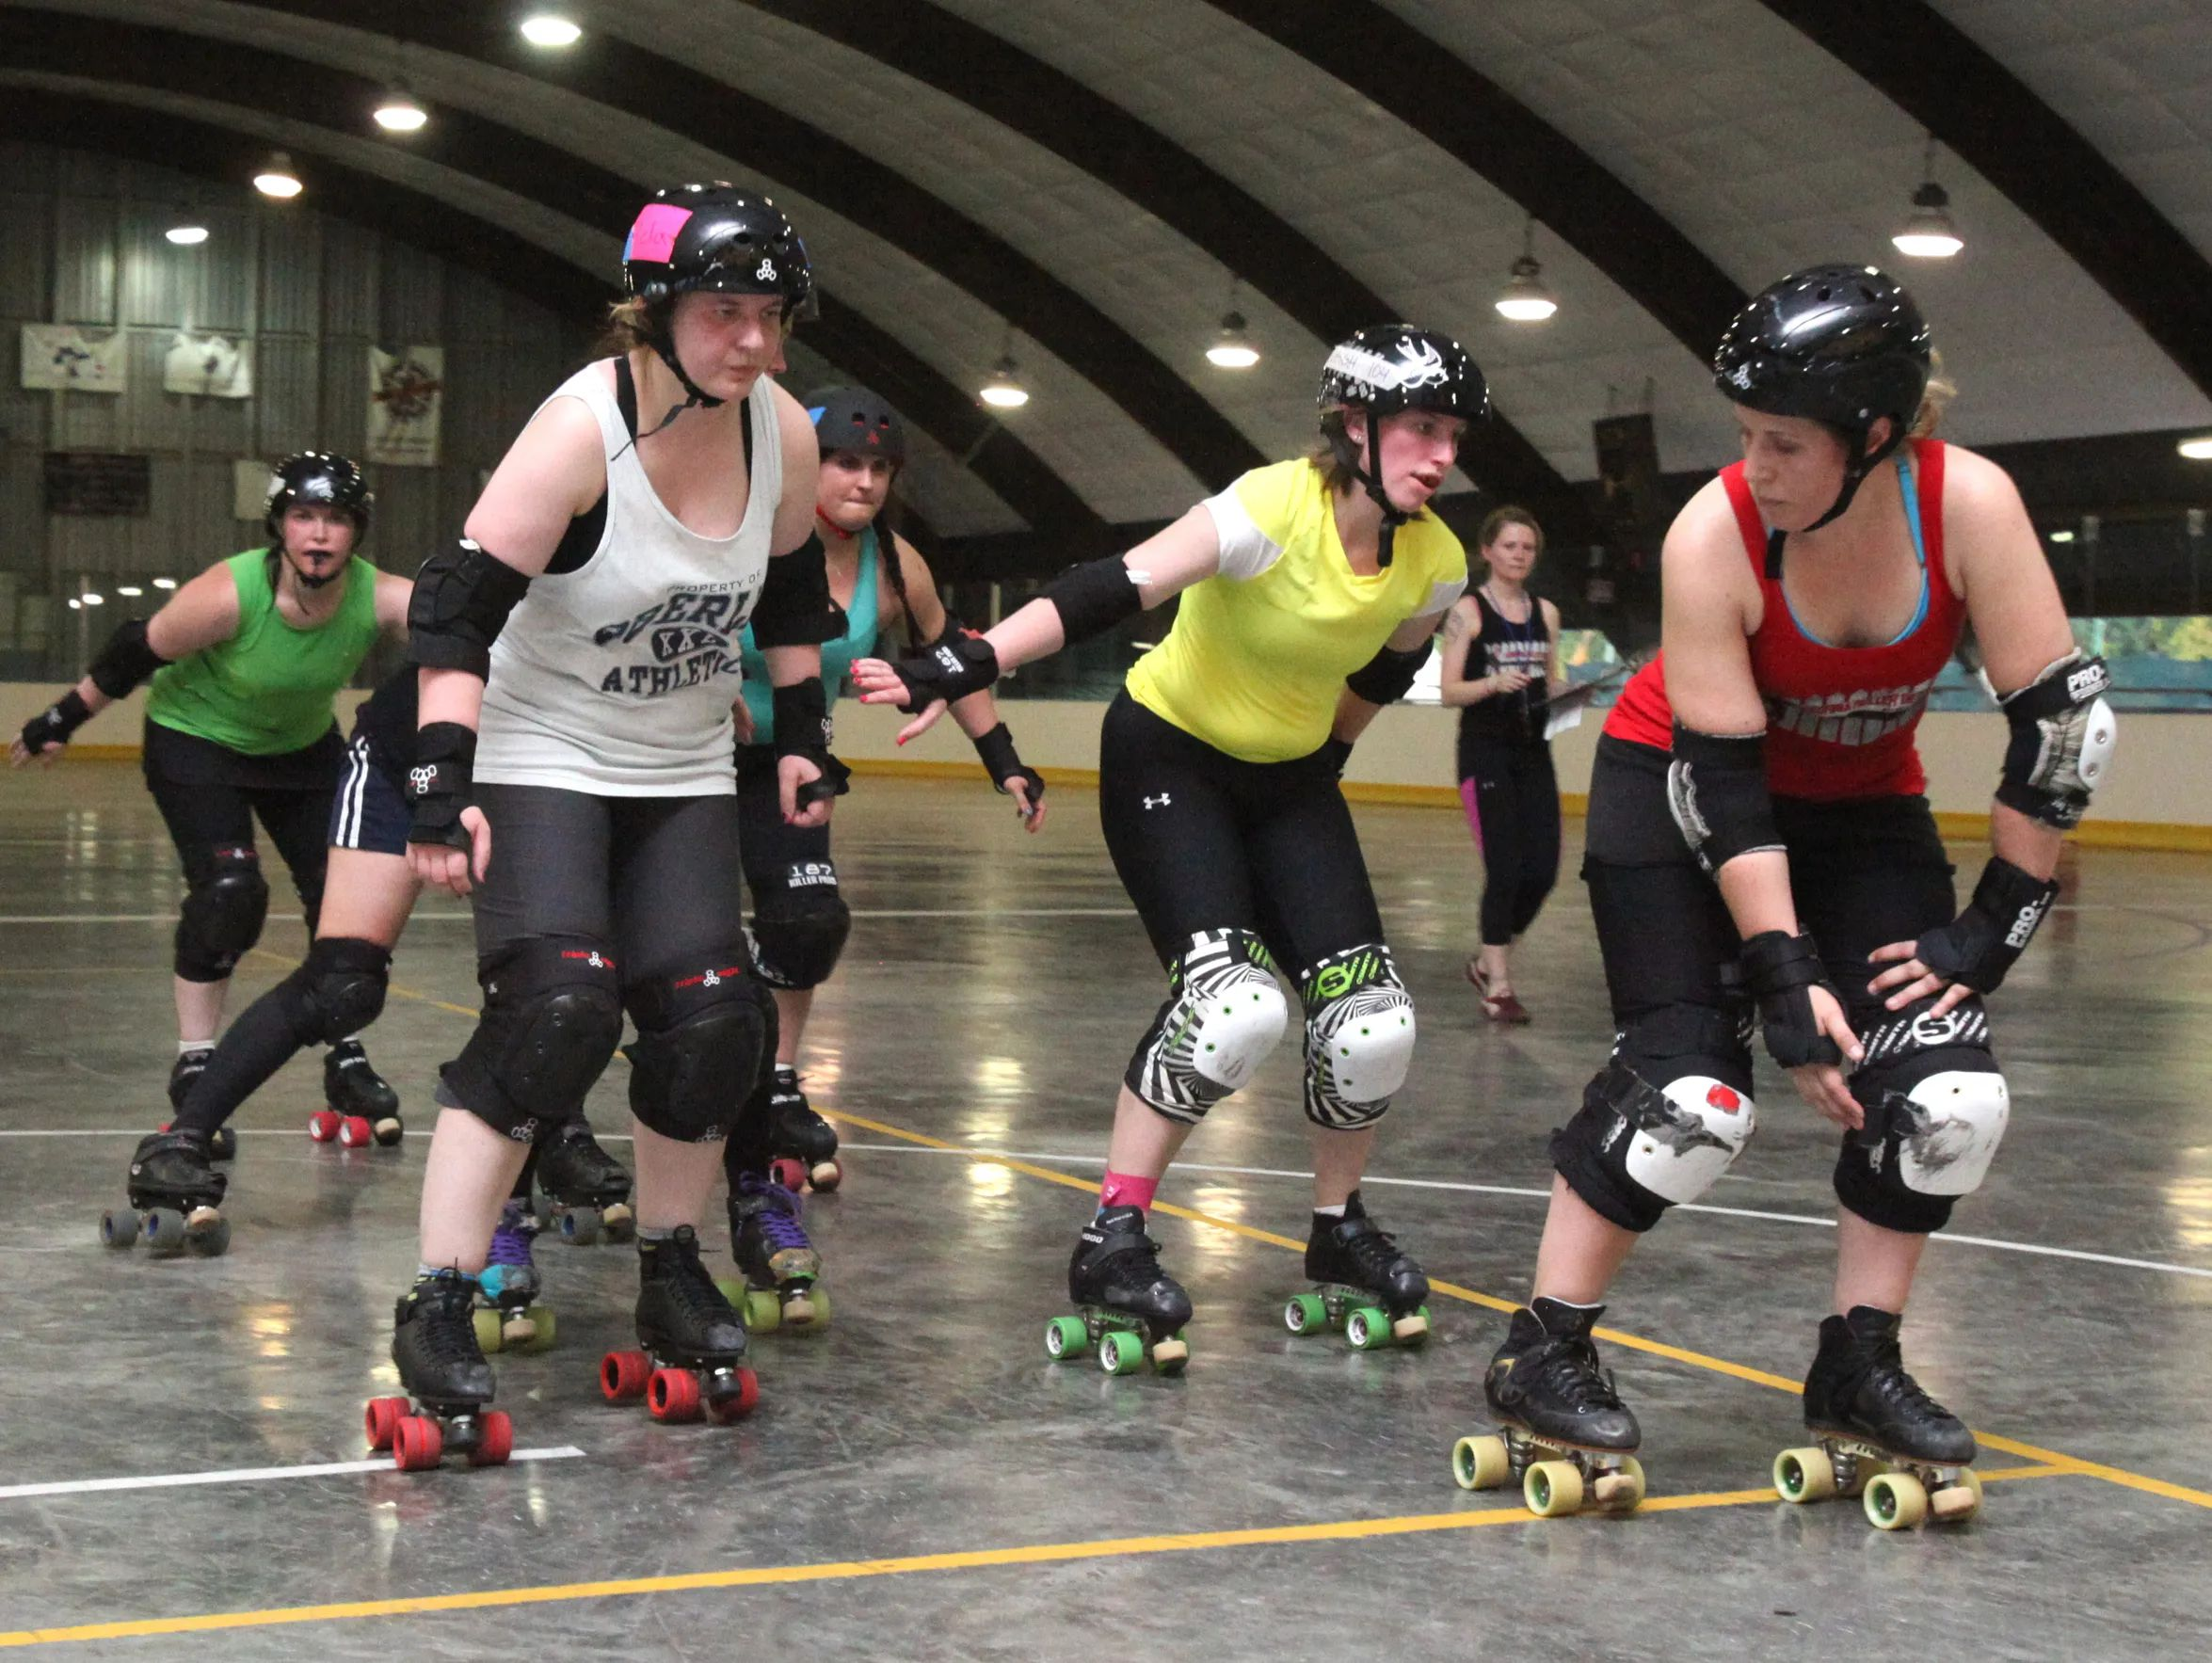 Suburbia roller derby will hold tryouts on sept 14